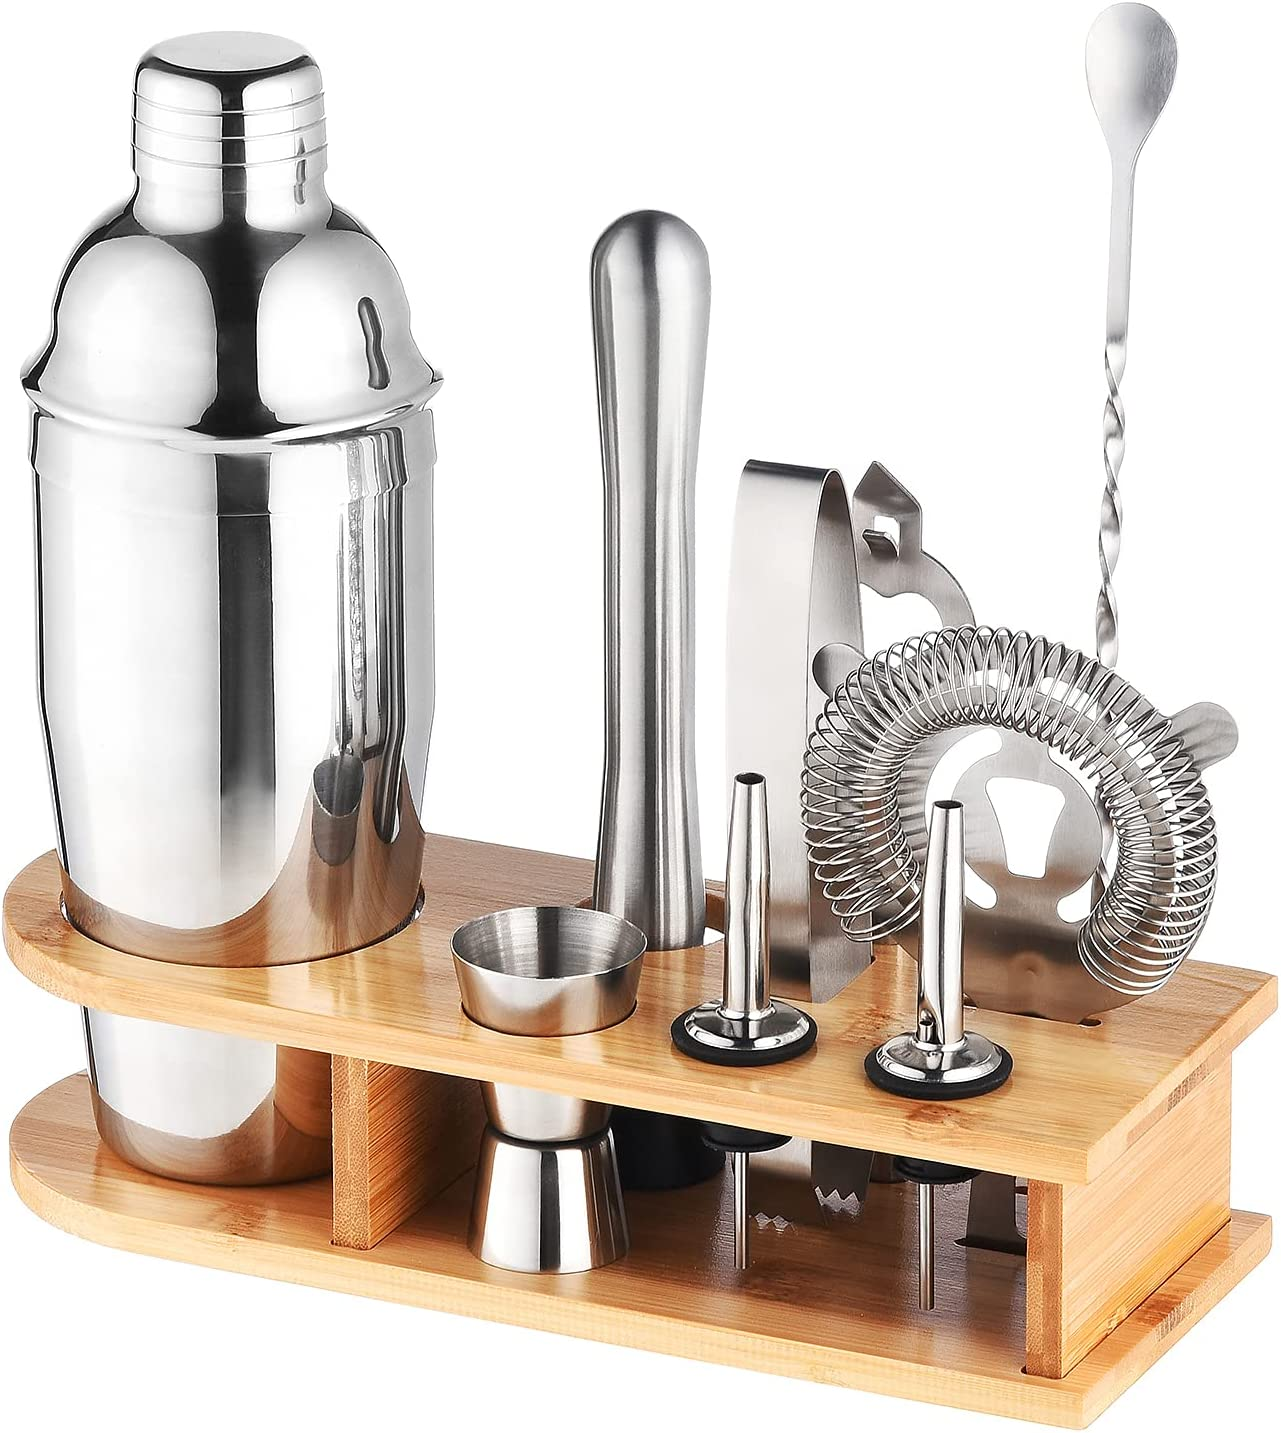 Cocktail Shaker Set 10Piece 304 Stainless Steel Bartender Kit with Bamboo Stand & all Essential Cocktail Set Bar Tools Perfect for Home & Traveling Bartending Kit